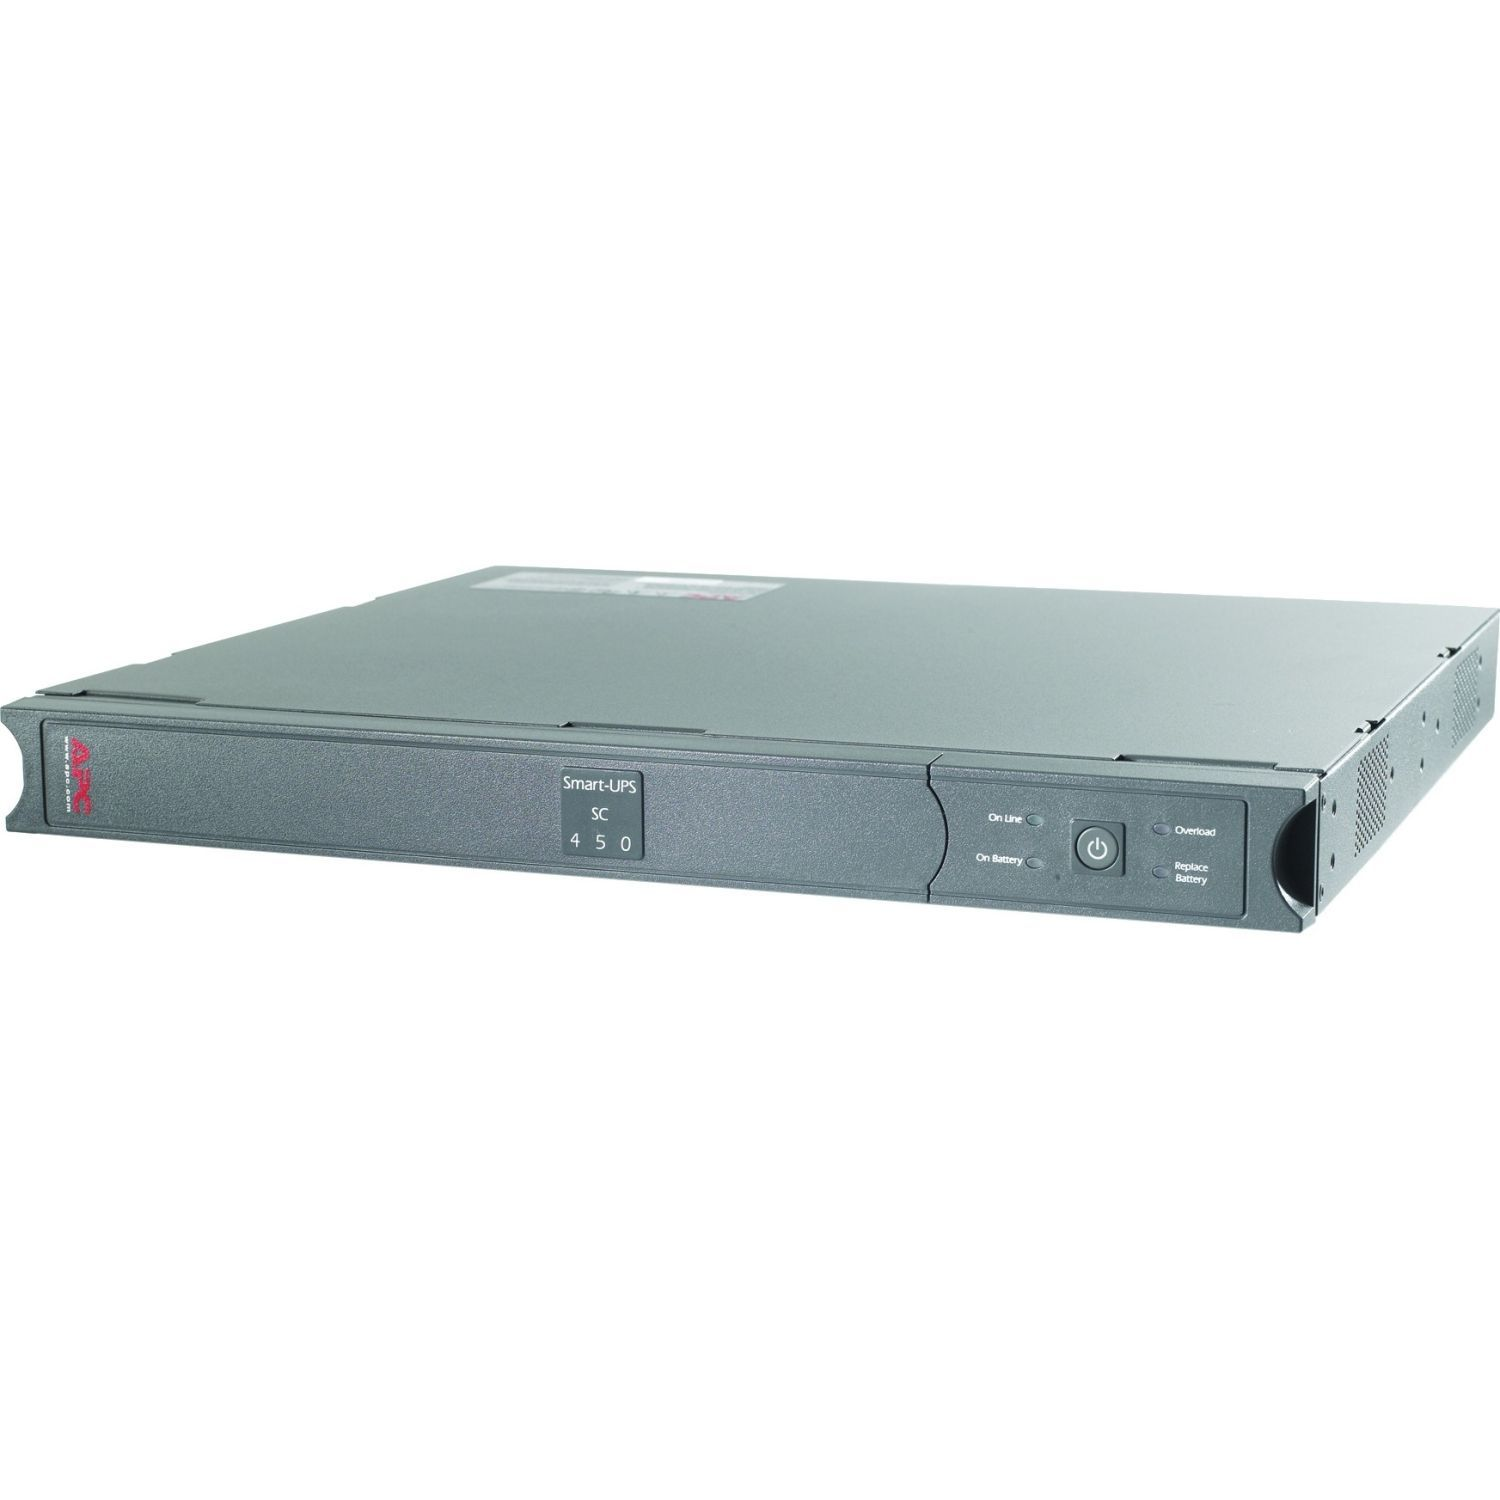 American Battery APC Smart-UPS SC 450 w/Network Management Card